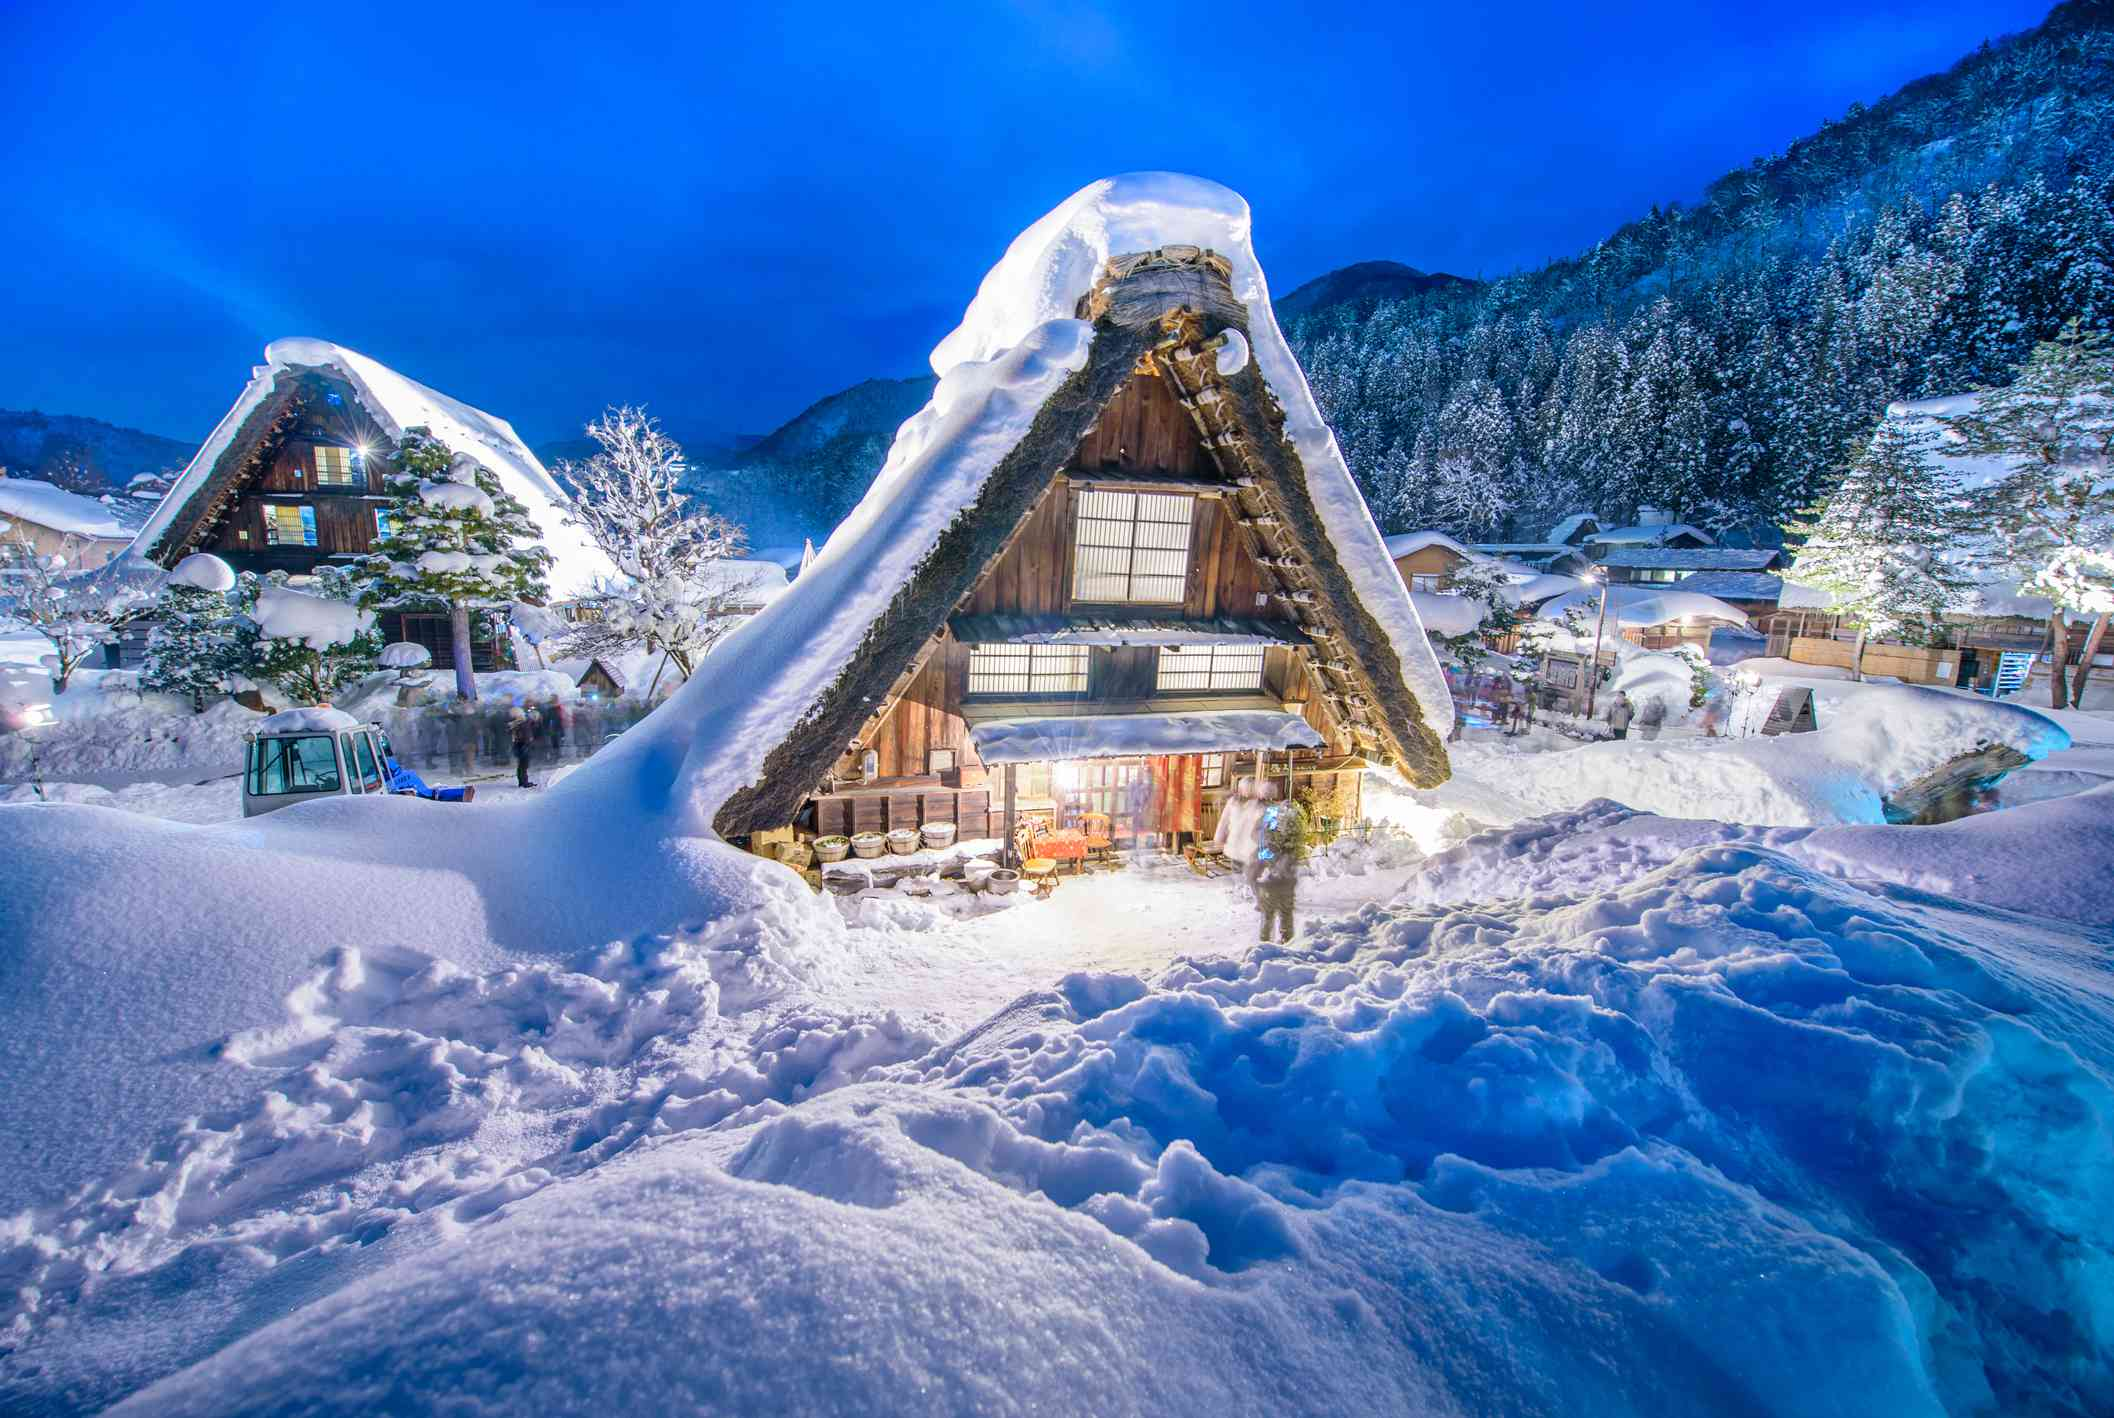 Shirakawa-go covered in snow and lit up in winter